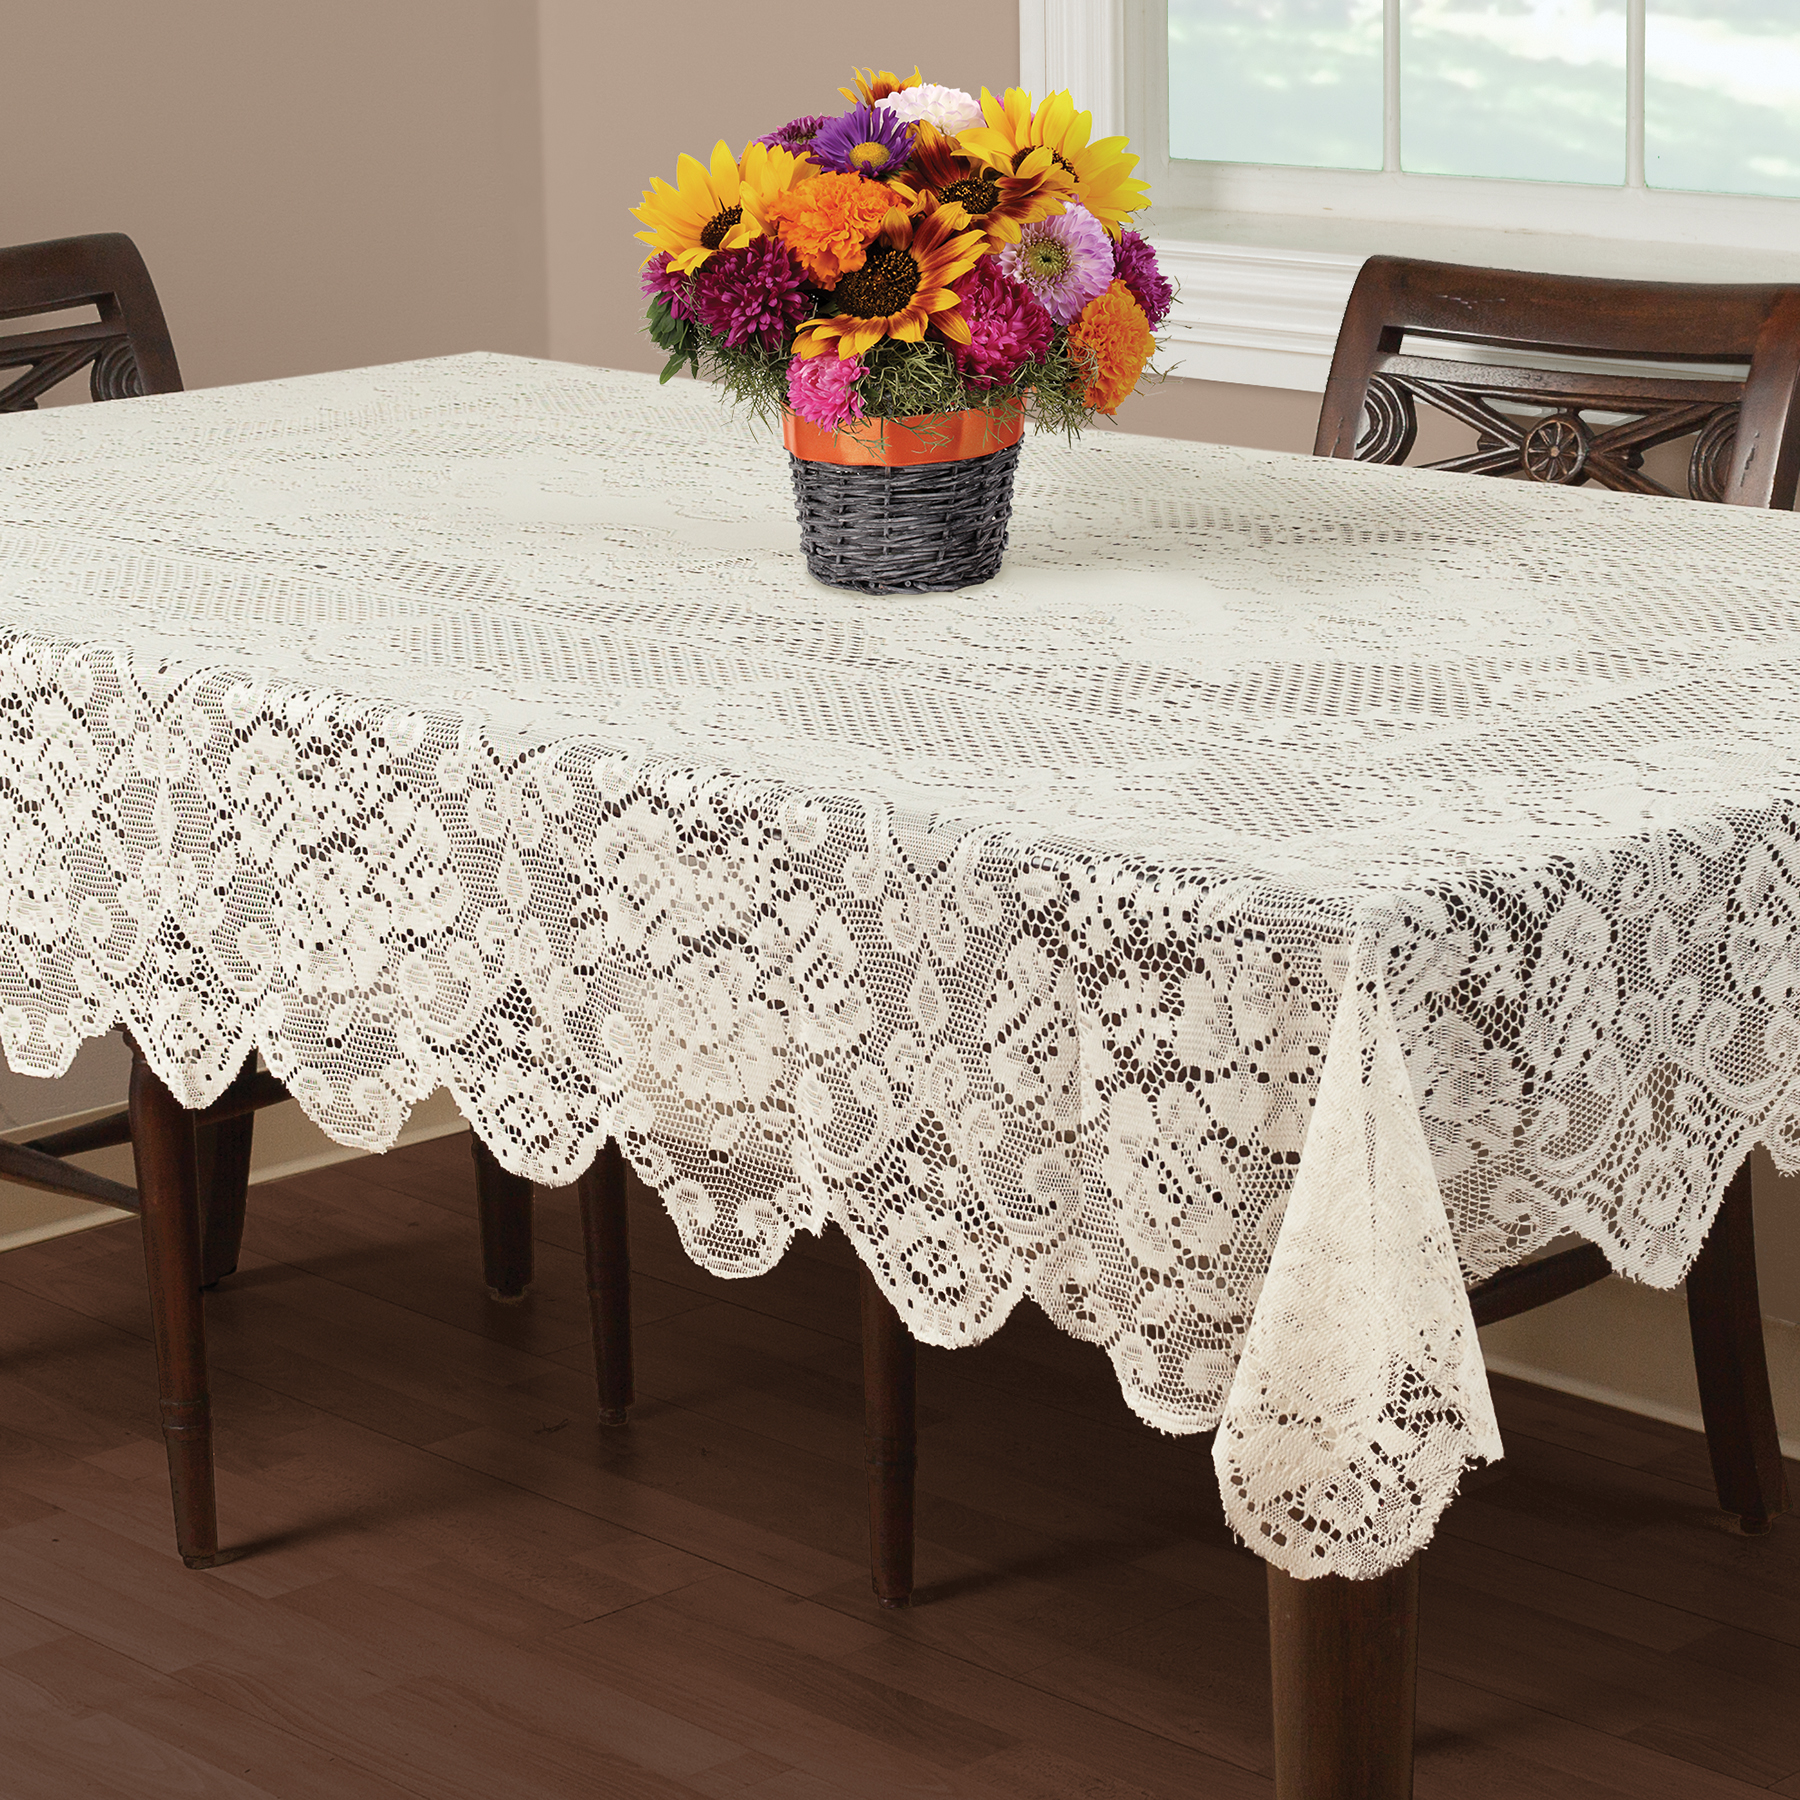 Round Vinyl Tablecloths | Lace Tablecloths | Where to Buy Tablecloths